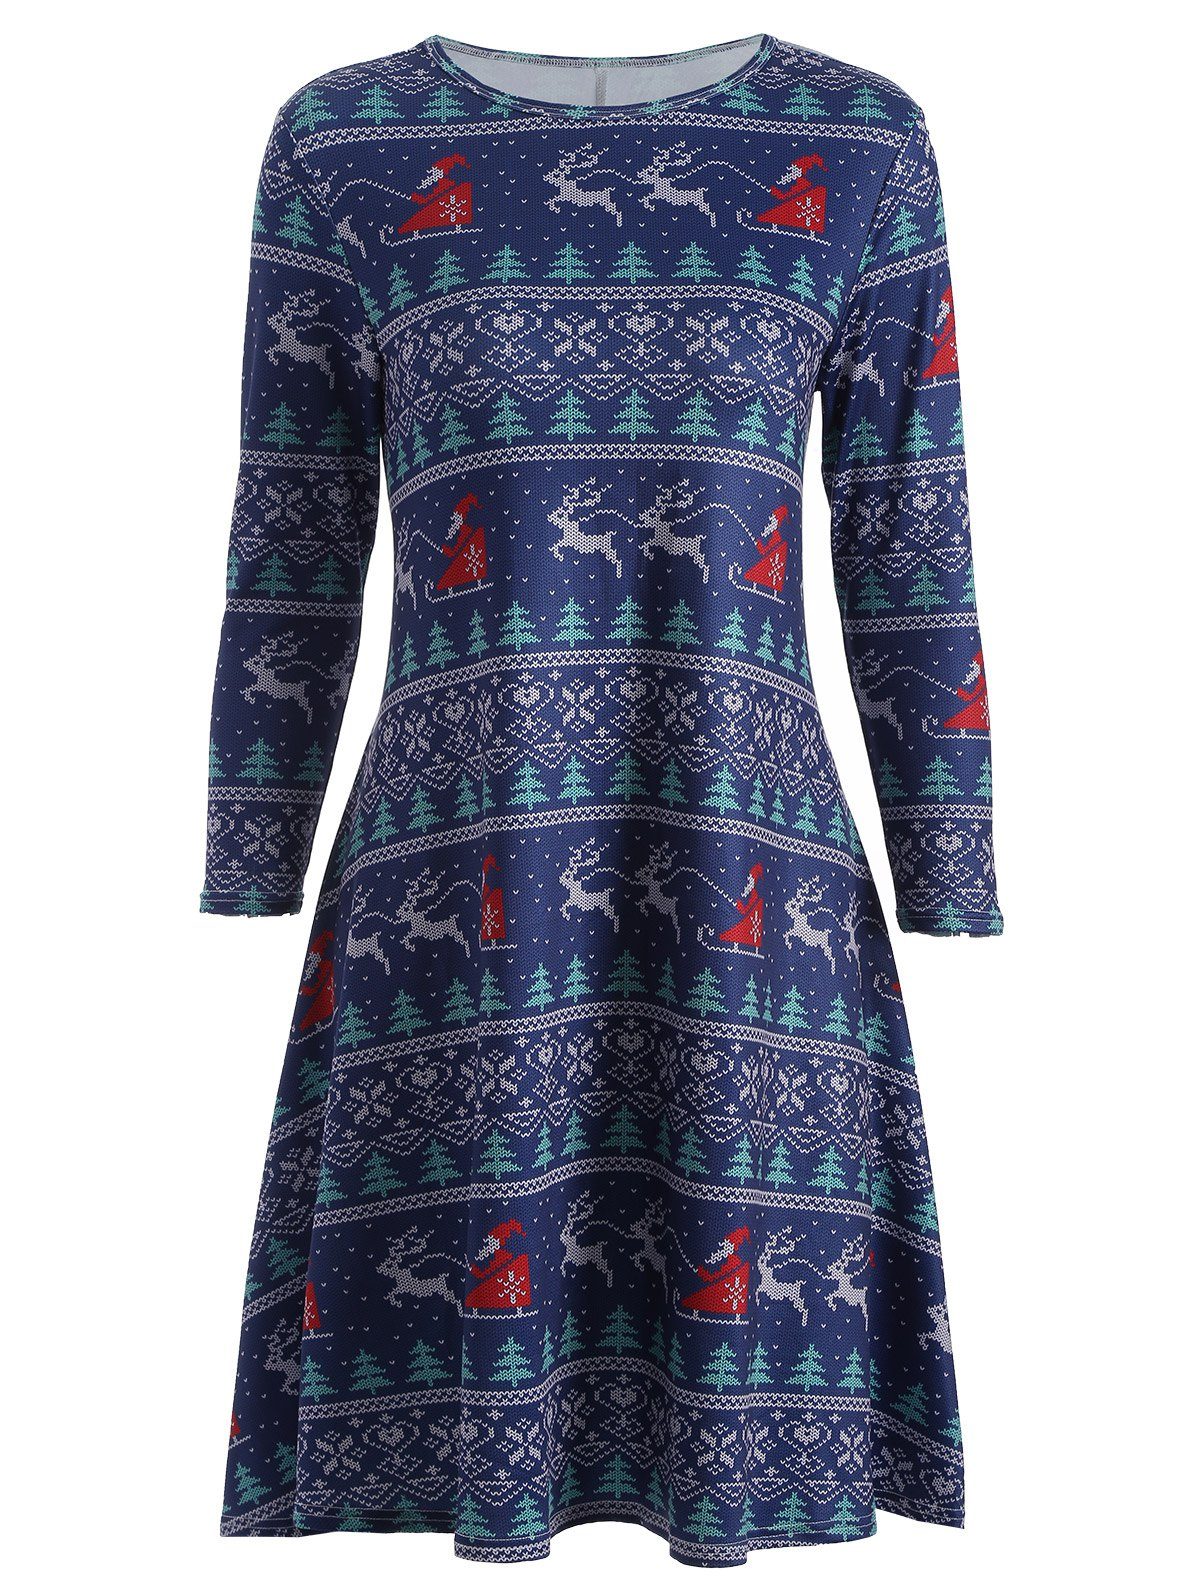 Christmas Elk Print Swing DressWOMEN<br><br>Size: ONE SIZE; Color: DEEP BLUE; Style: Cute; Material: Polyester; Silhouette: A-Line; Dresses Length: Knee-Length; Neckline: Jewel Neck; Sleeve Length: 3/4 Length Sleeves; Pattern Type: Print; With Belt: No; Season: Fall,Spring; Weight: 0.320kg; Package Contents: 1 x Dress;